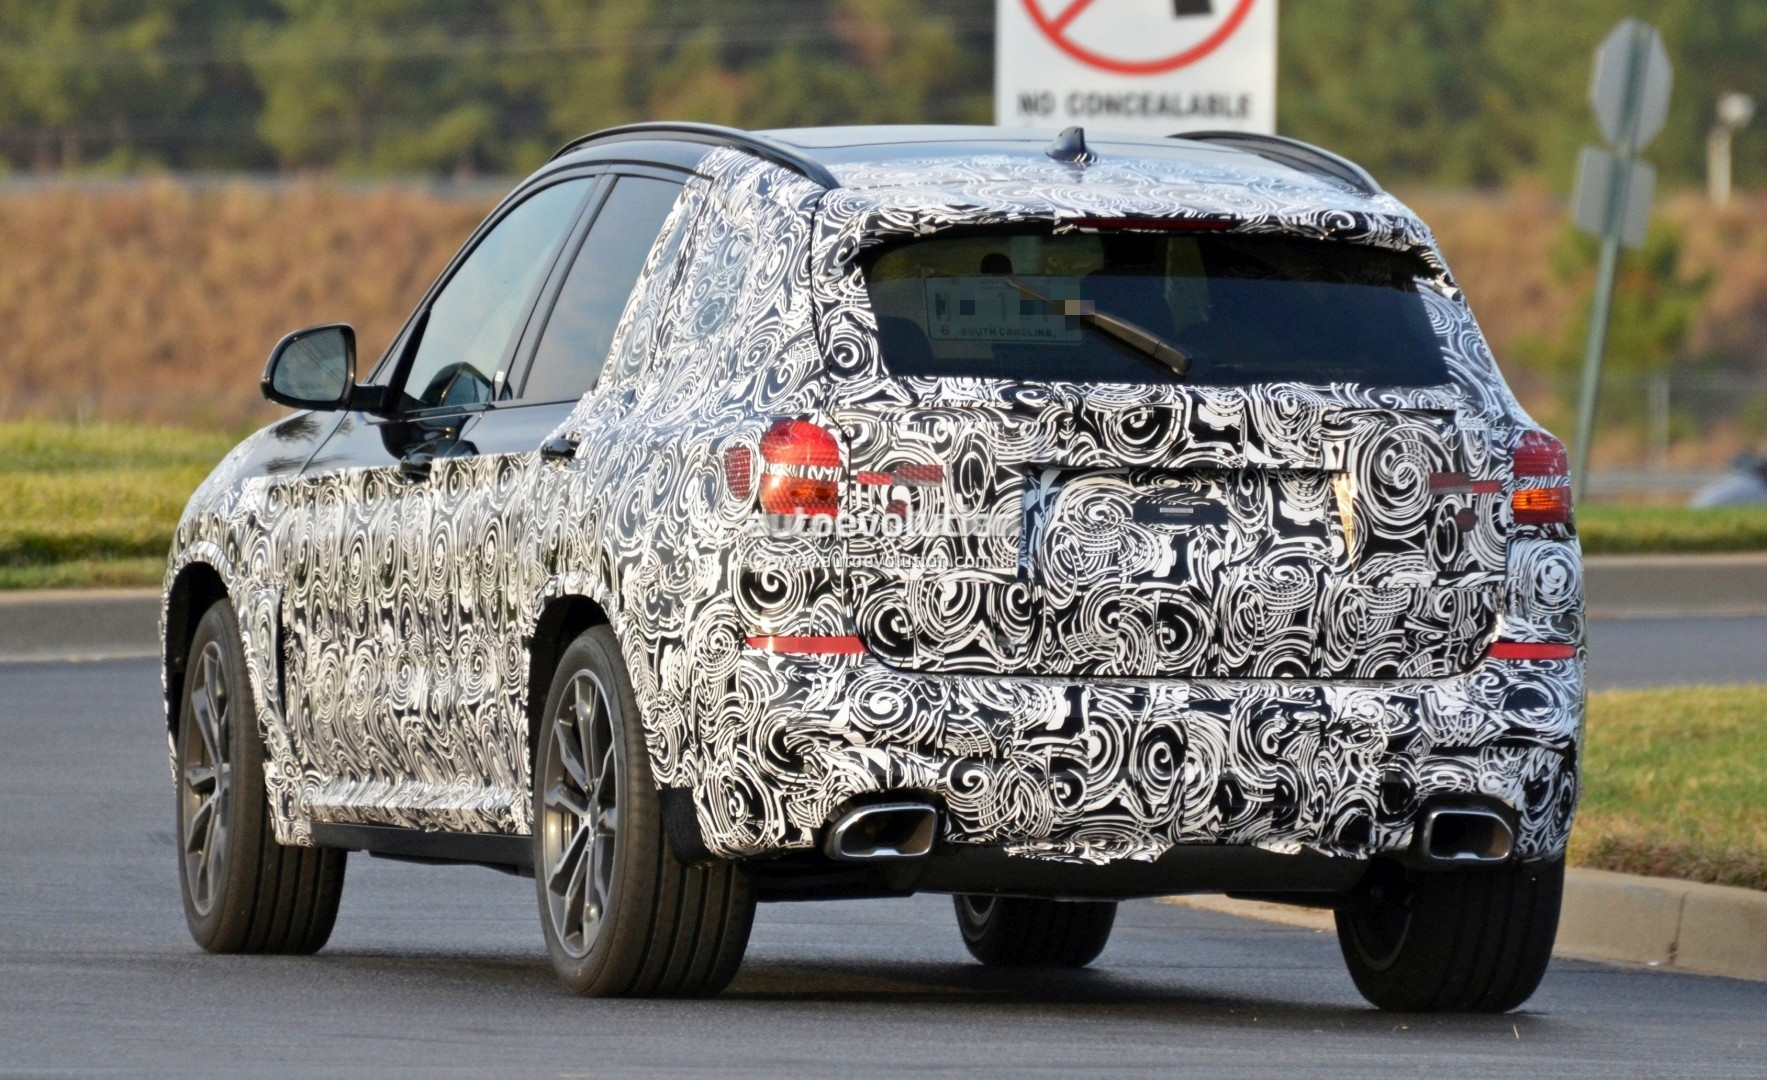 2016 - [BMW] X3 [G01] - Page 5 2018-bmw-x3-spied-at-spartanburg-plant-with-less-camouflage-shows-mature-design_10